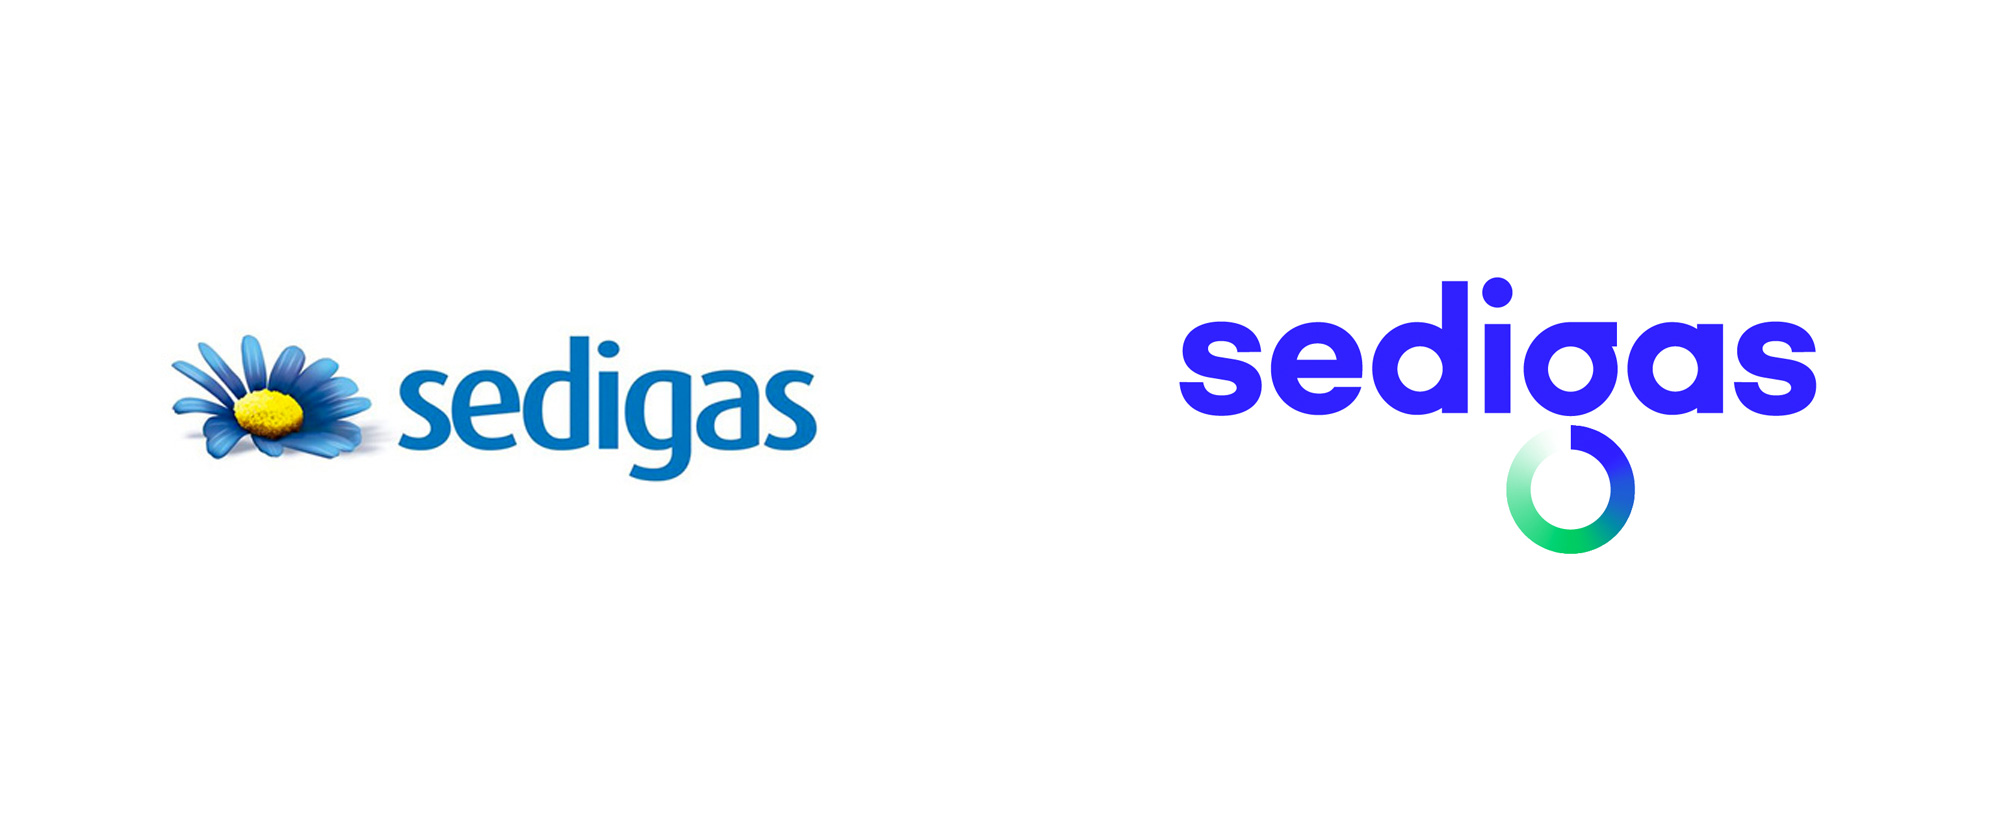 New Logo and Identity for Sedigas by Morillas